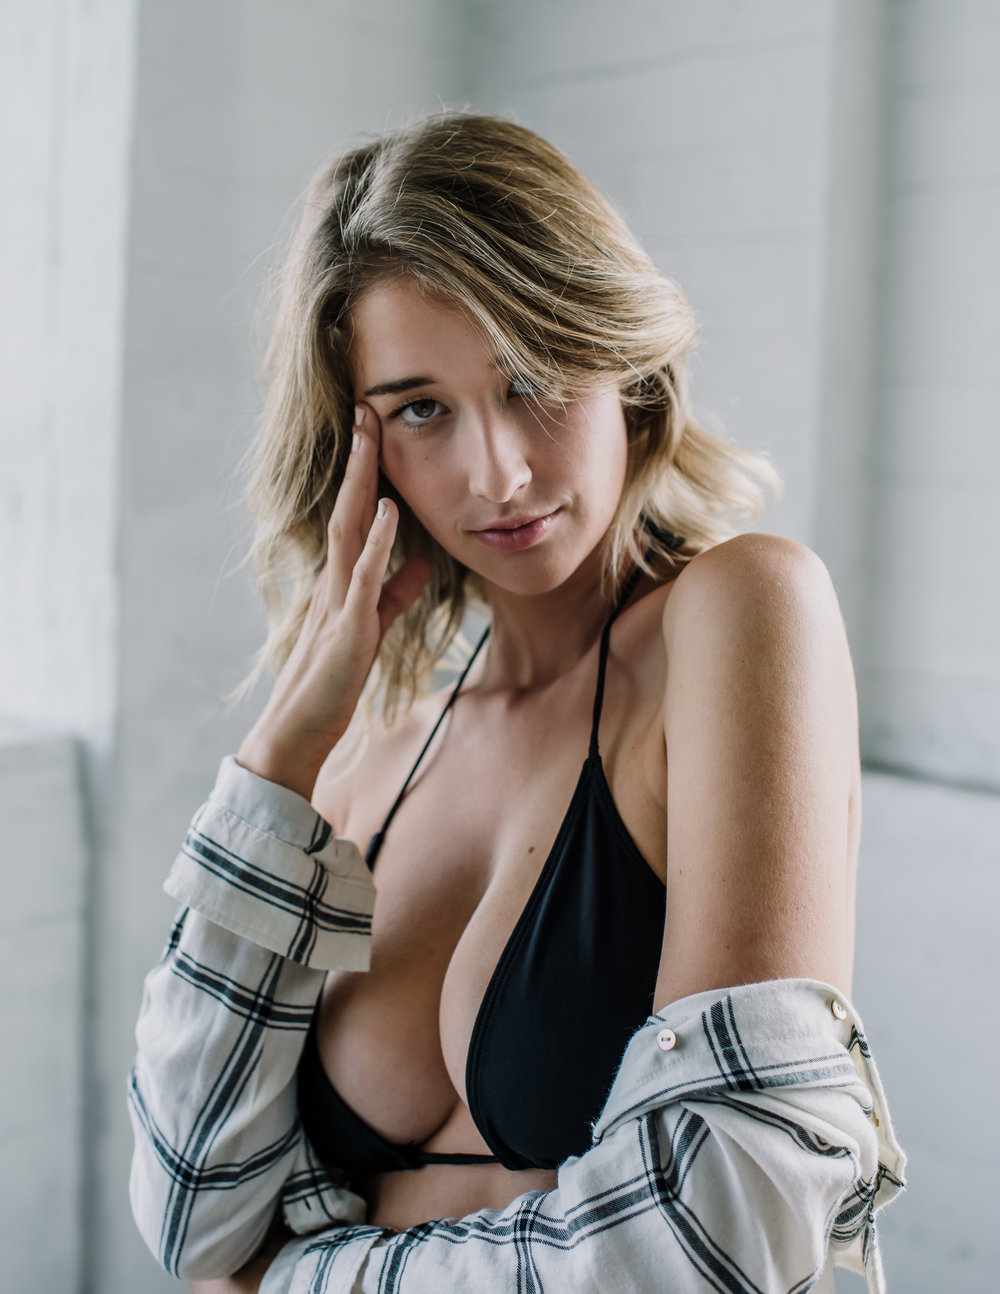 TAYLOR COCHRANE TGS TALENT